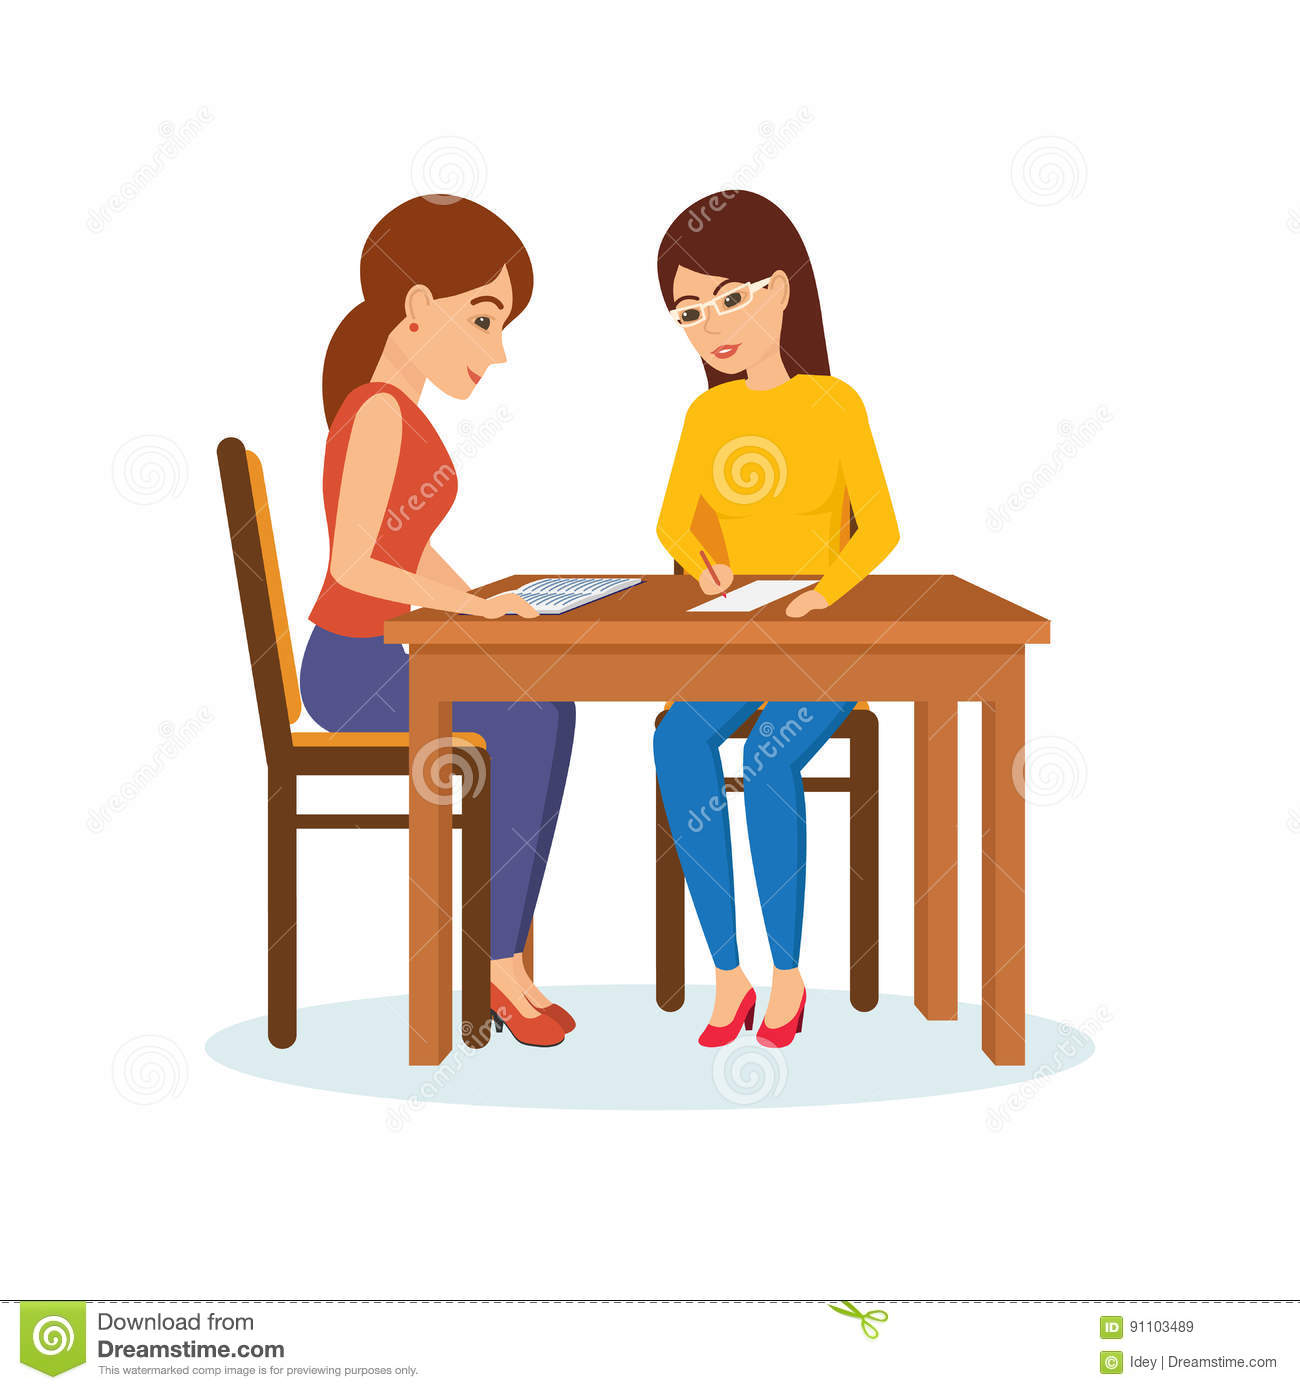 Deciding stock illustrations royalty free gograph - Girls Sitting At Table Decide Working Moments Discuss Exchange Materials Royalty Free Stock